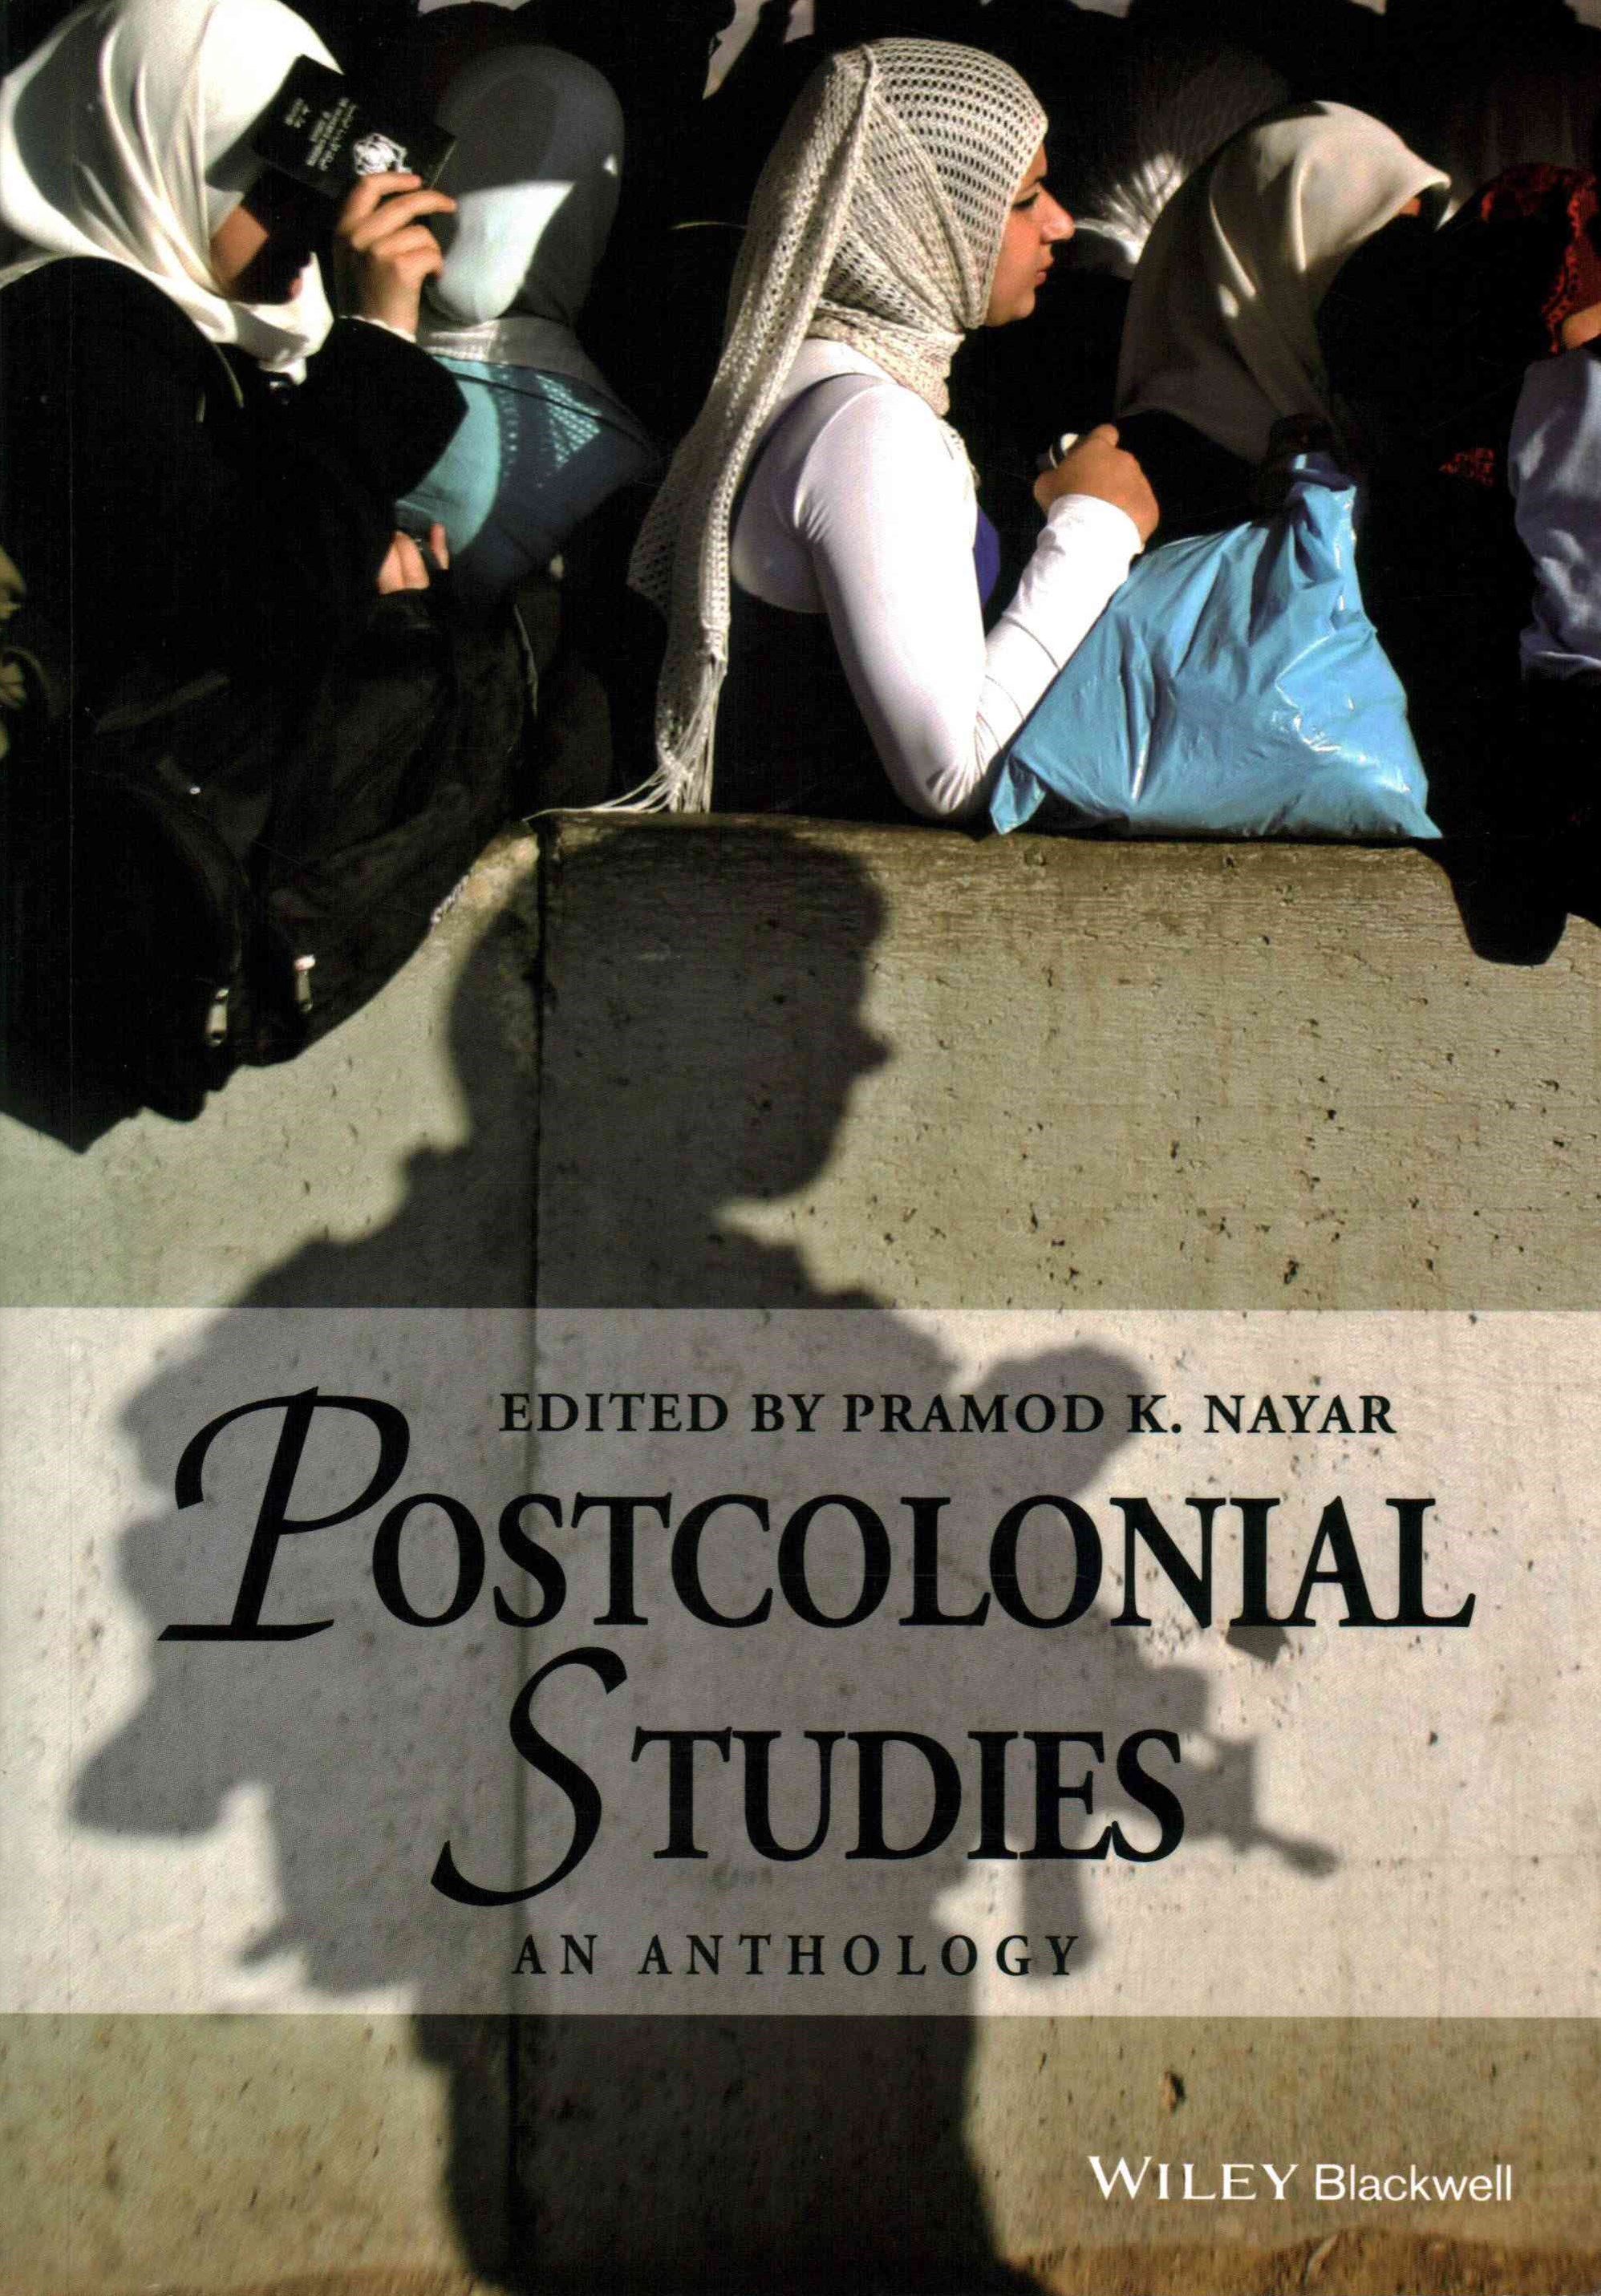 Postcolonial Studies - an Anthology